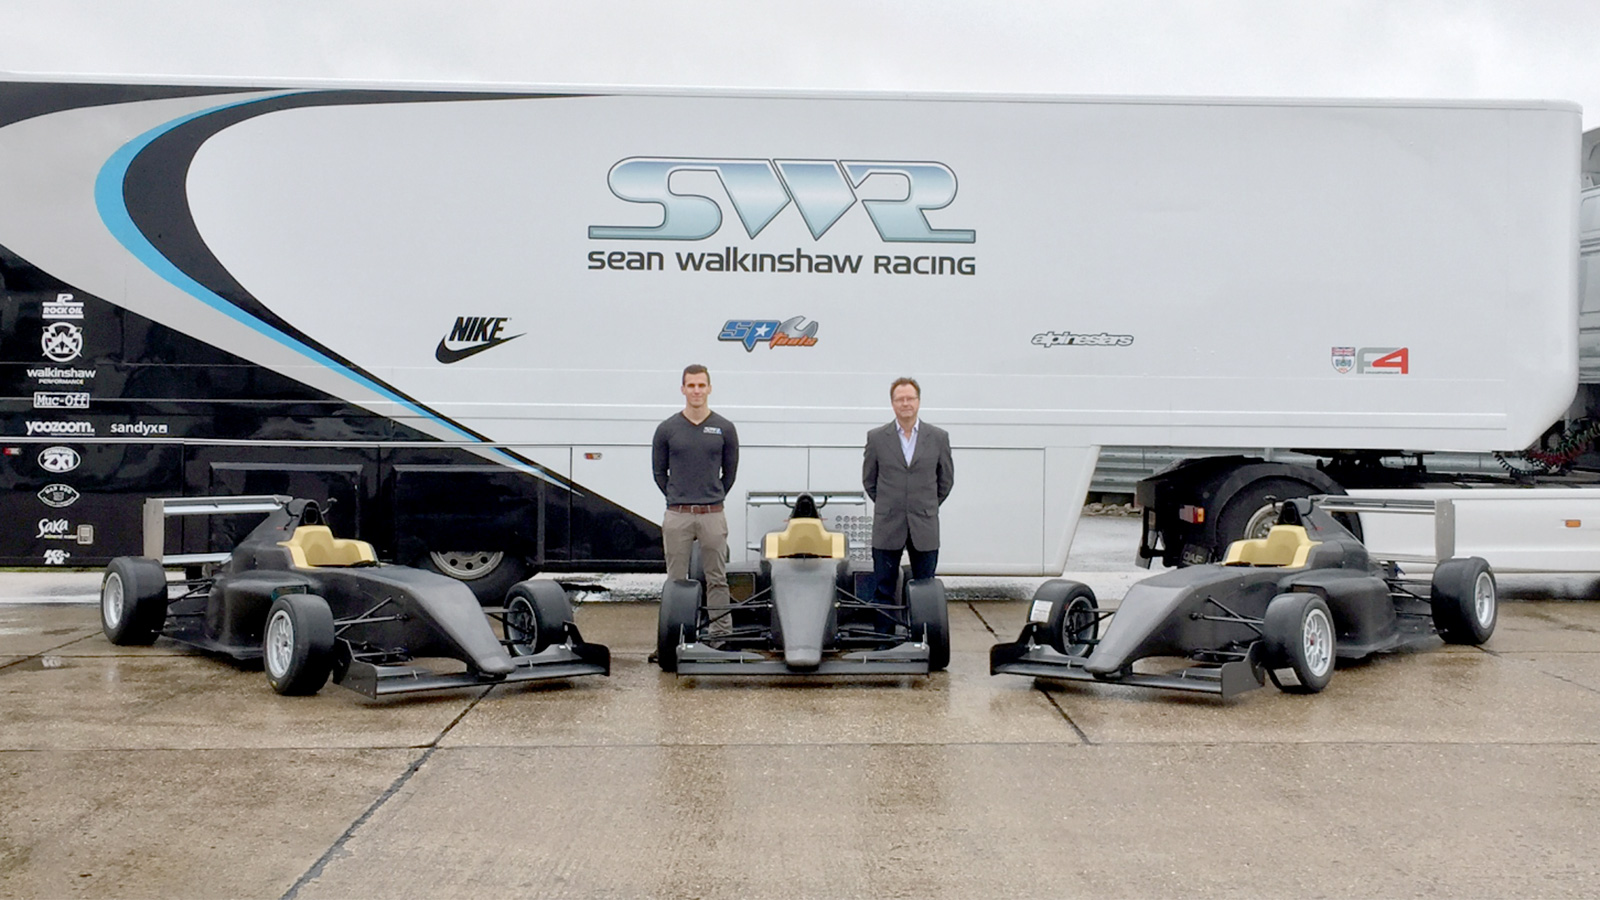 Owned Sean Walkinshaw, the team is firmly established as a consistent front-runner and race winner in BRDC F4.